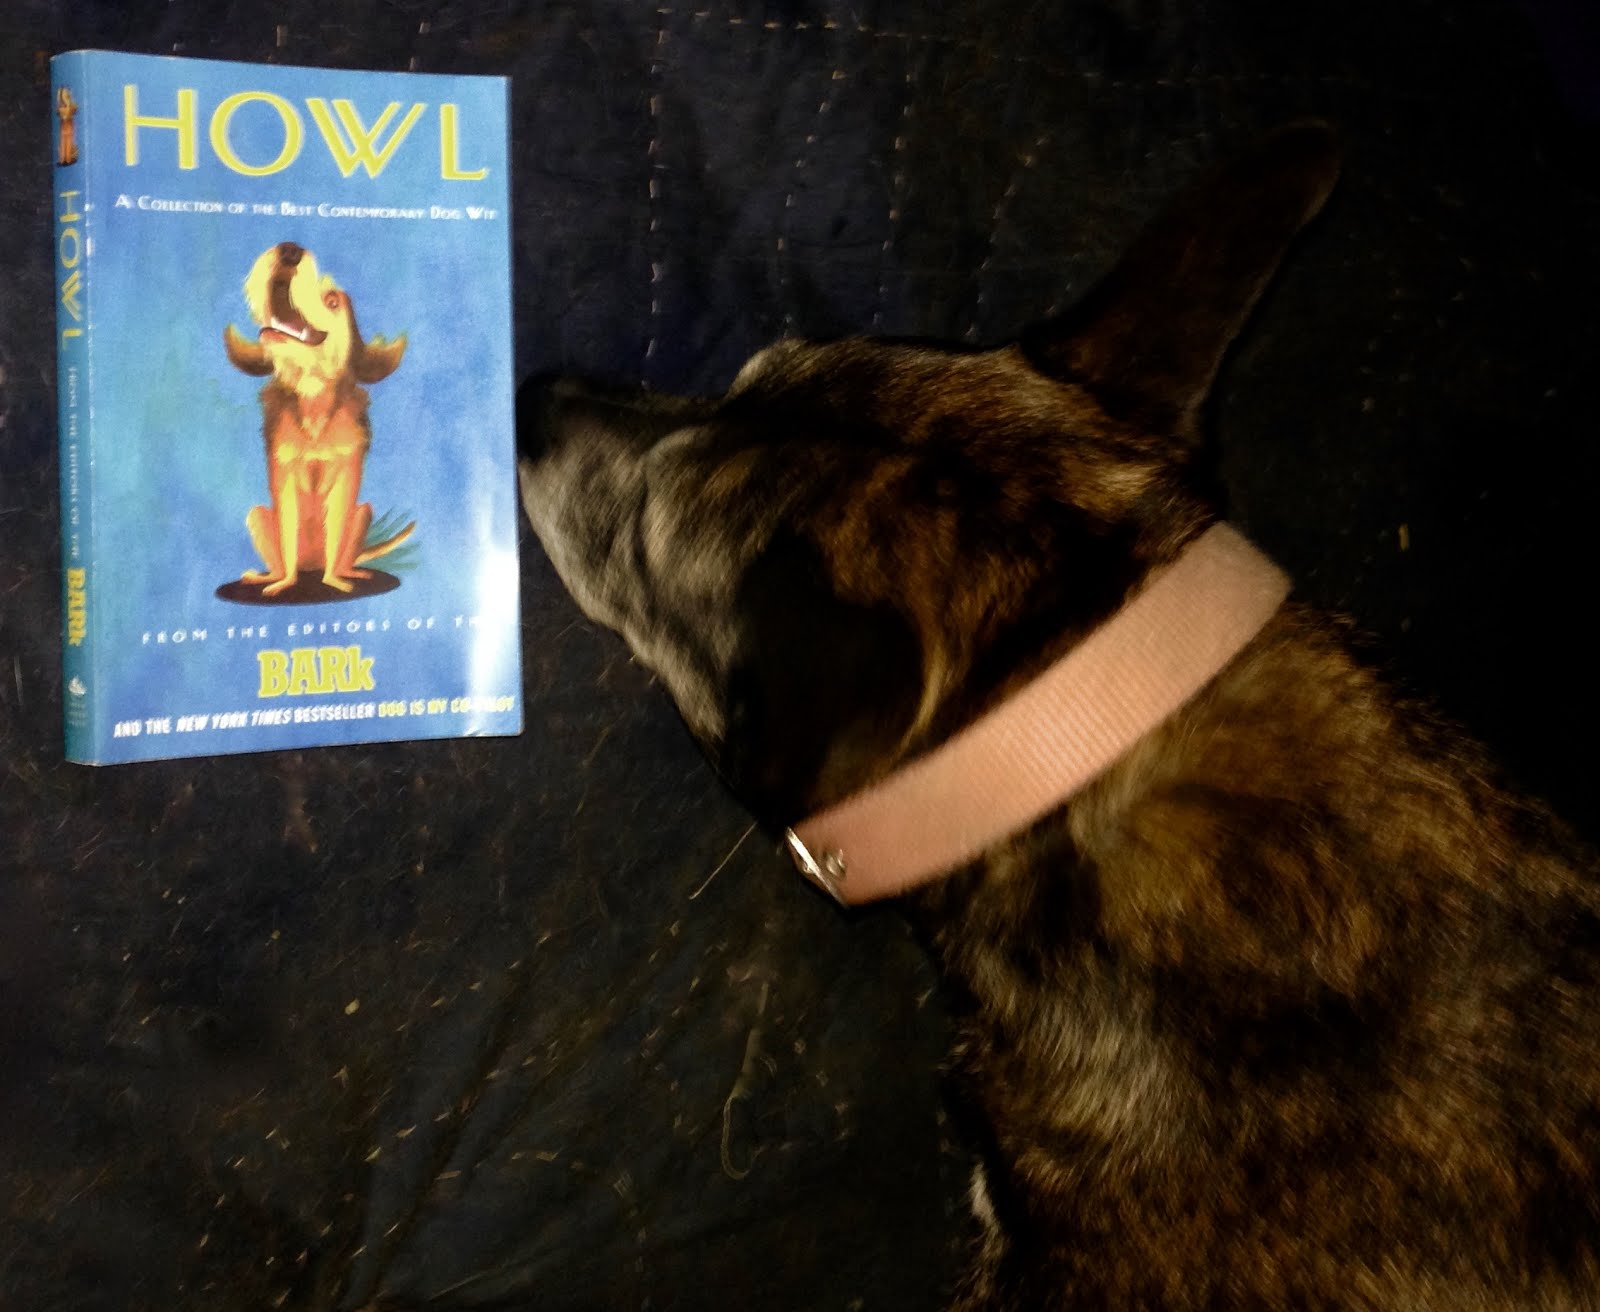 DOGS DIG BOOKS @ John's Rare Books and Collectibles